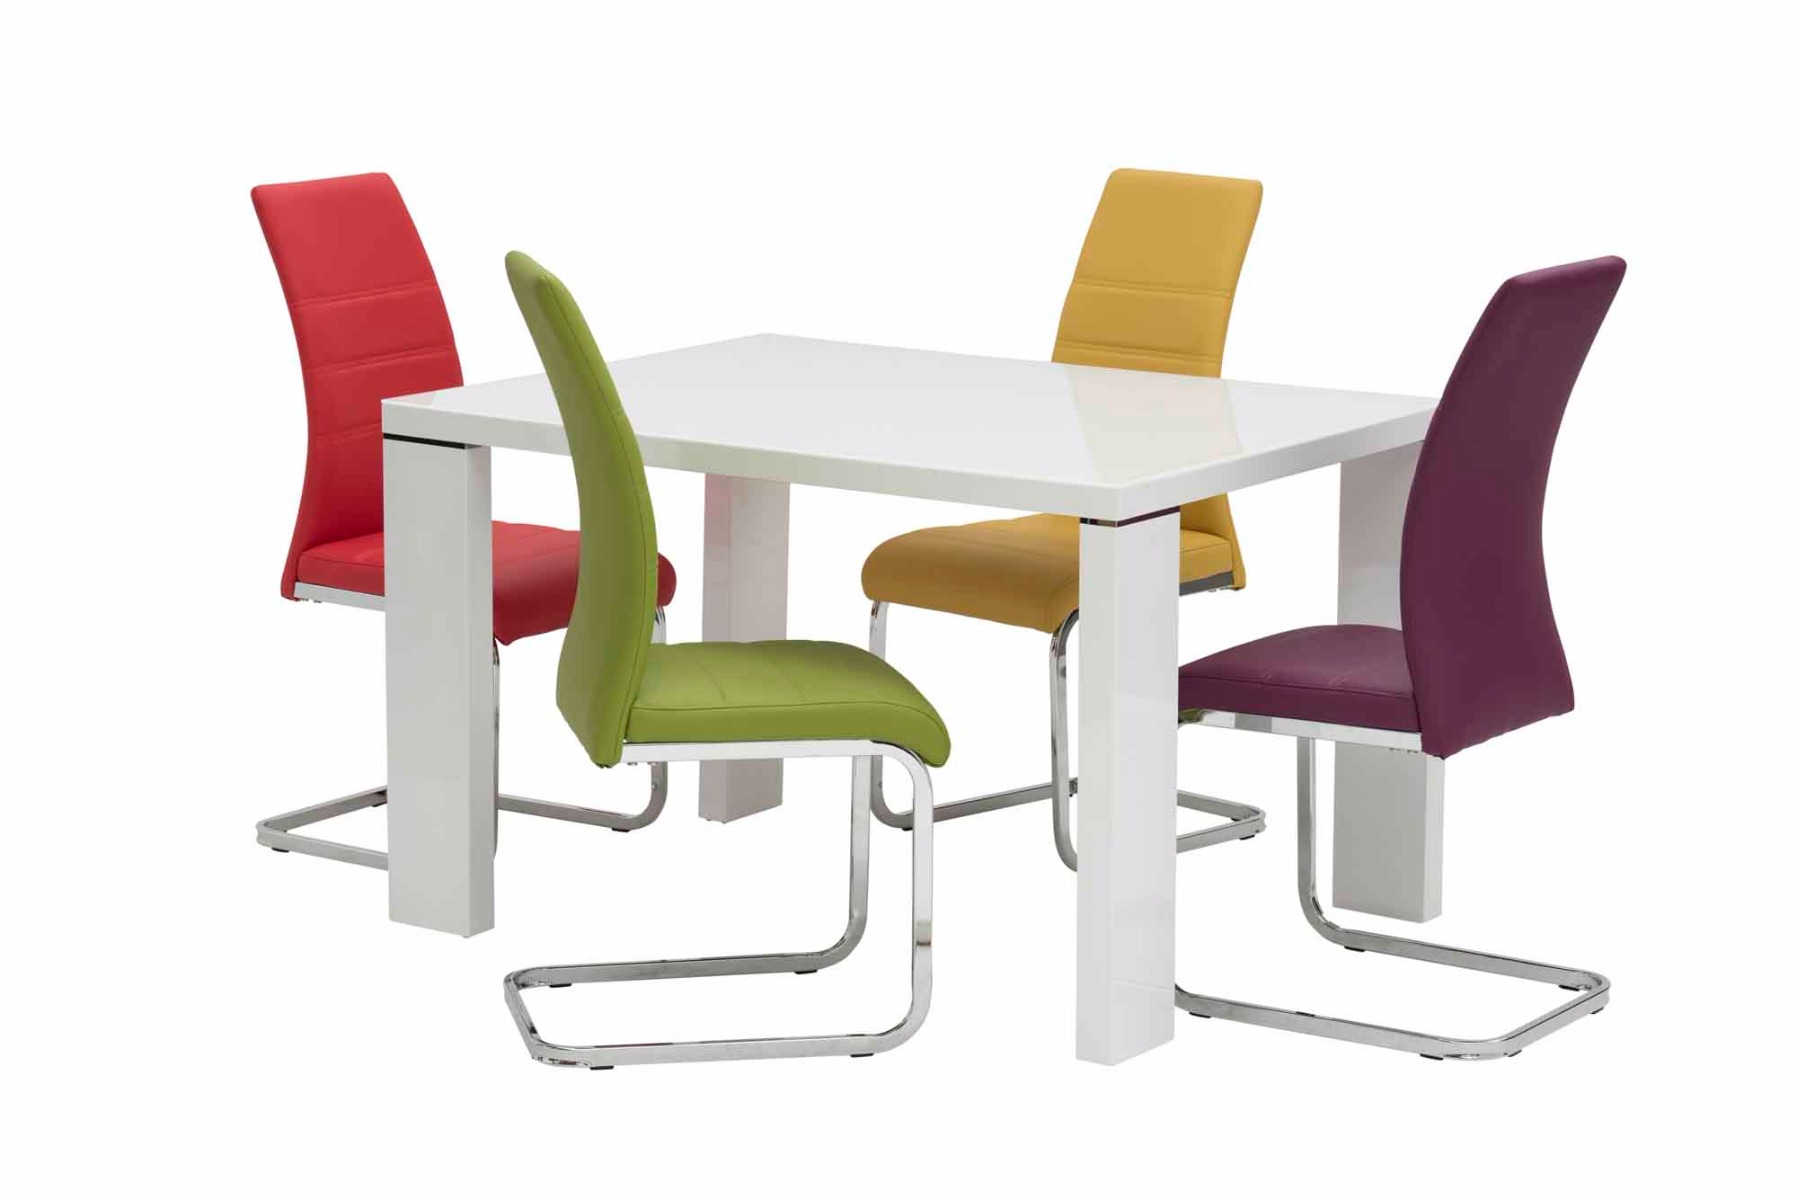 Soho White Gloss 120cm Rectangular Dining Table With 4 Soho Purple Leather Dining Chair